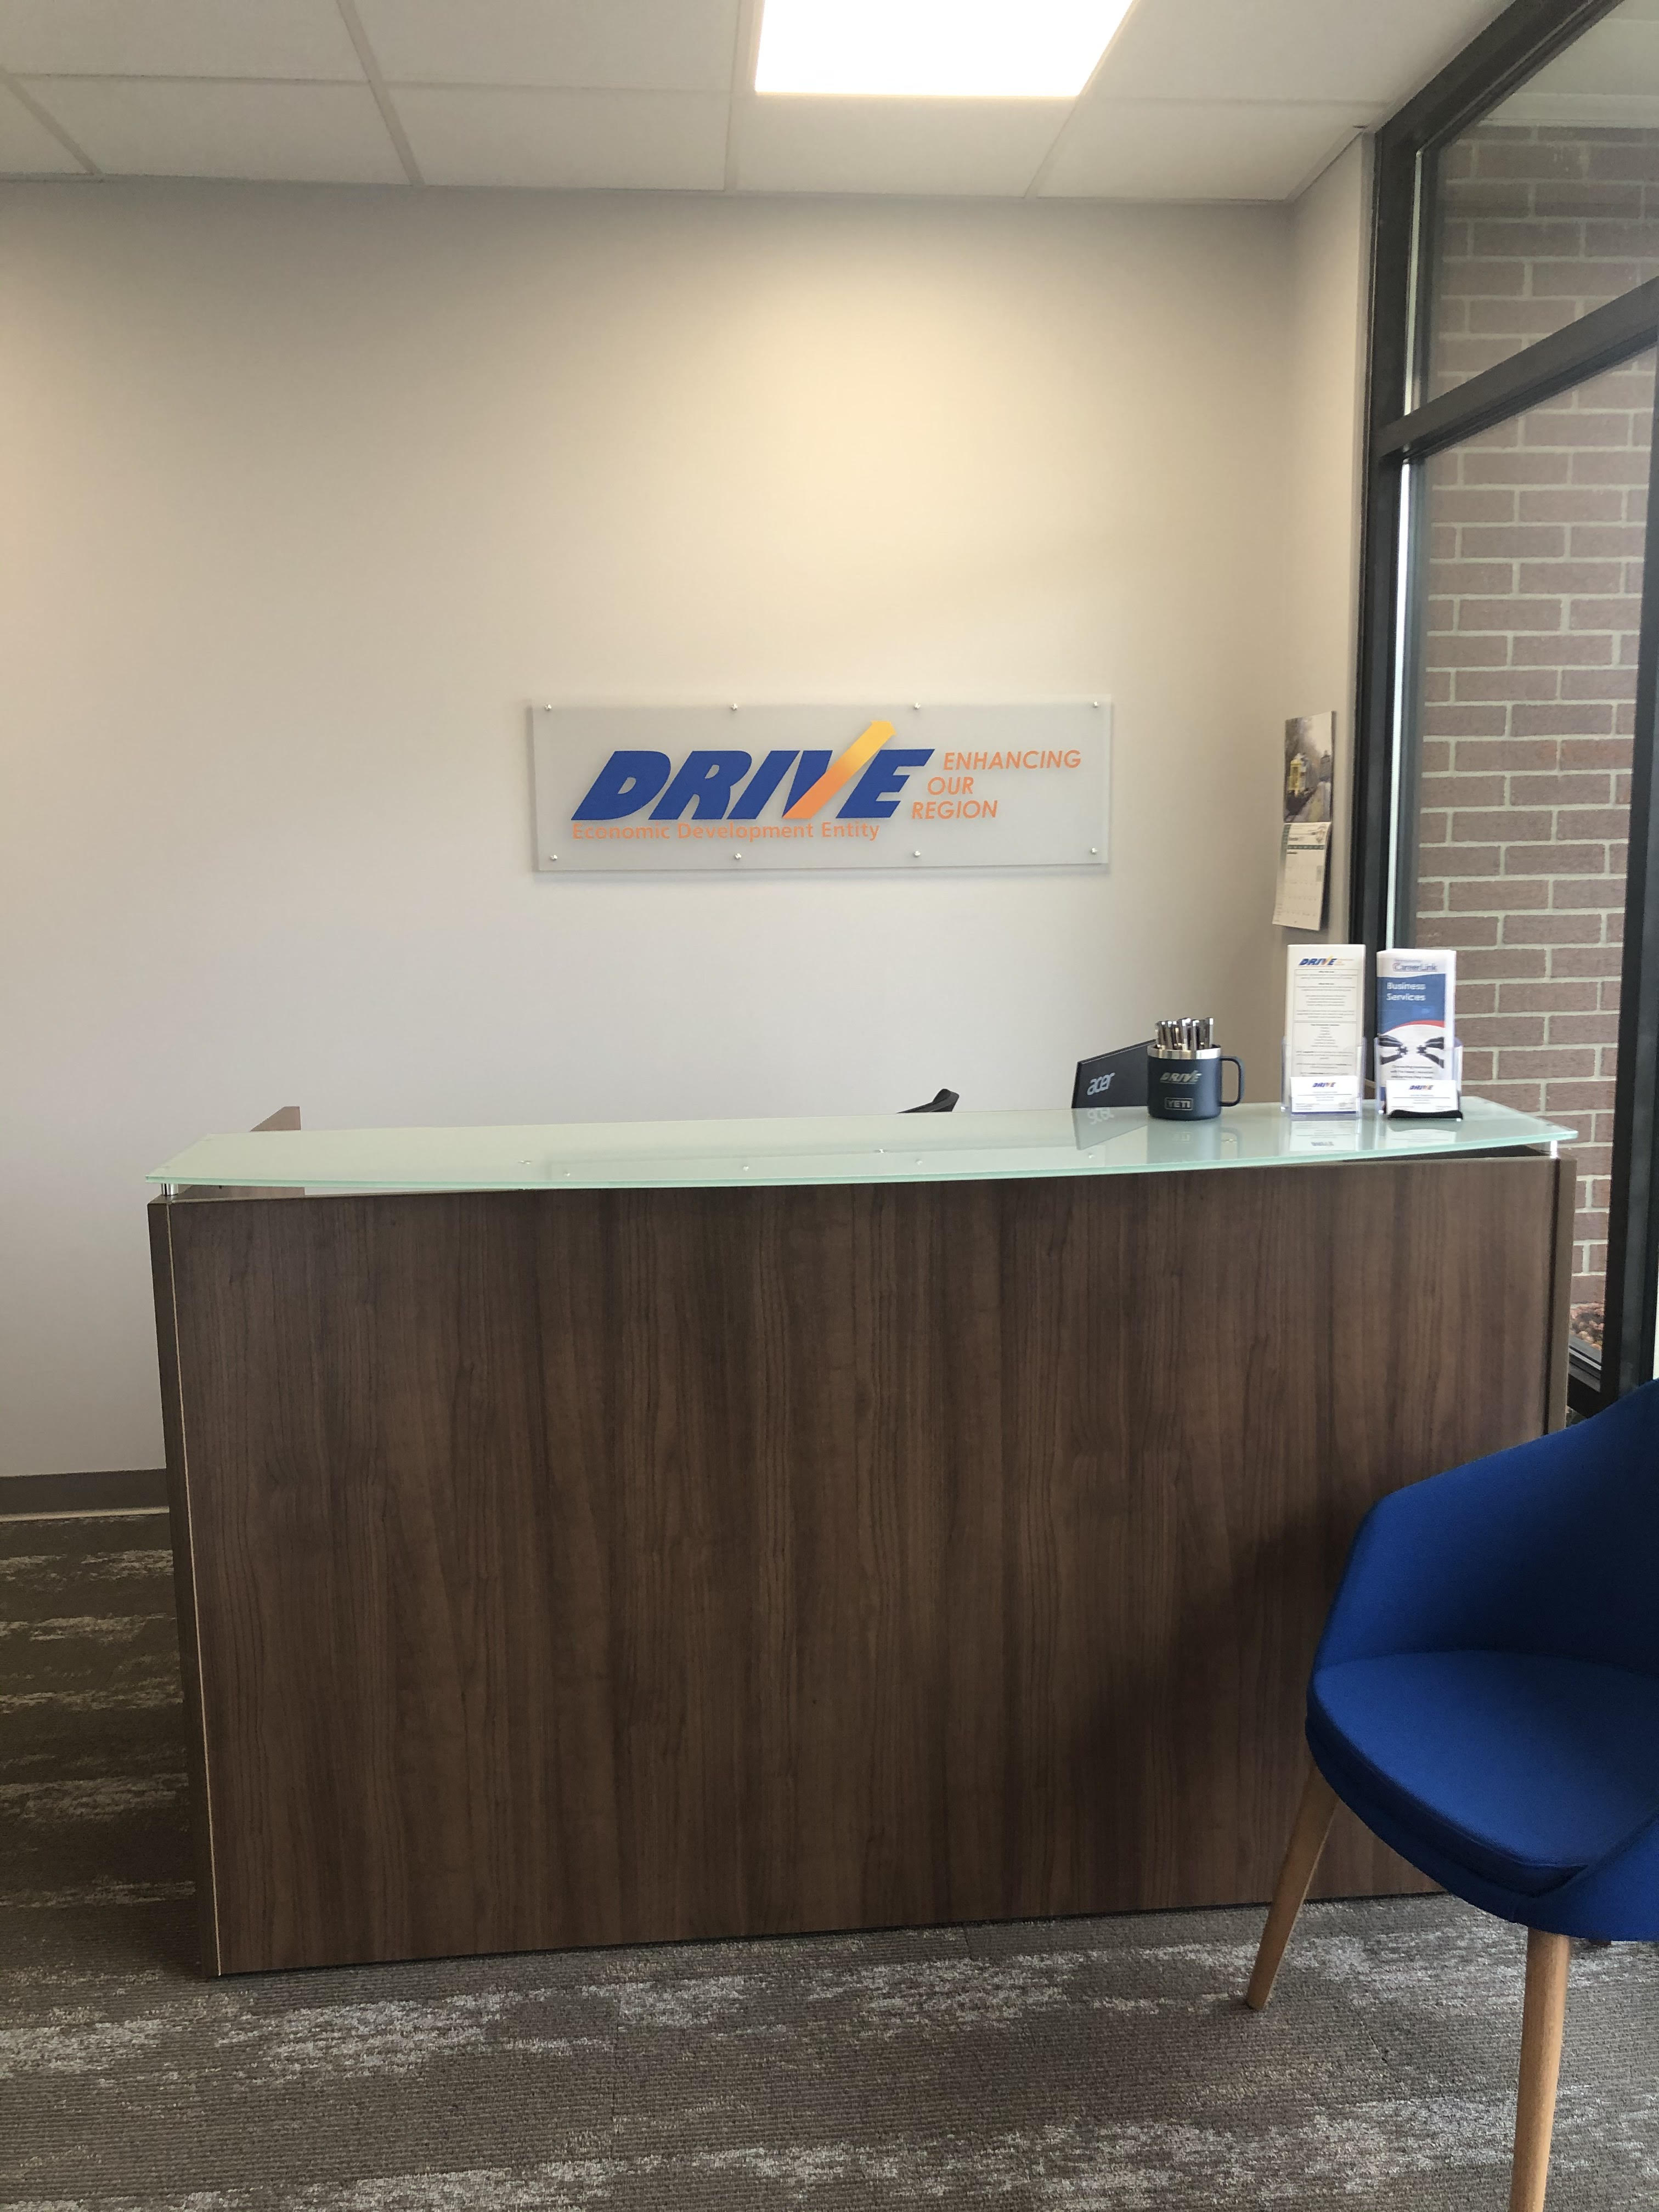 DRIVE Professional Building DRIVE Reception